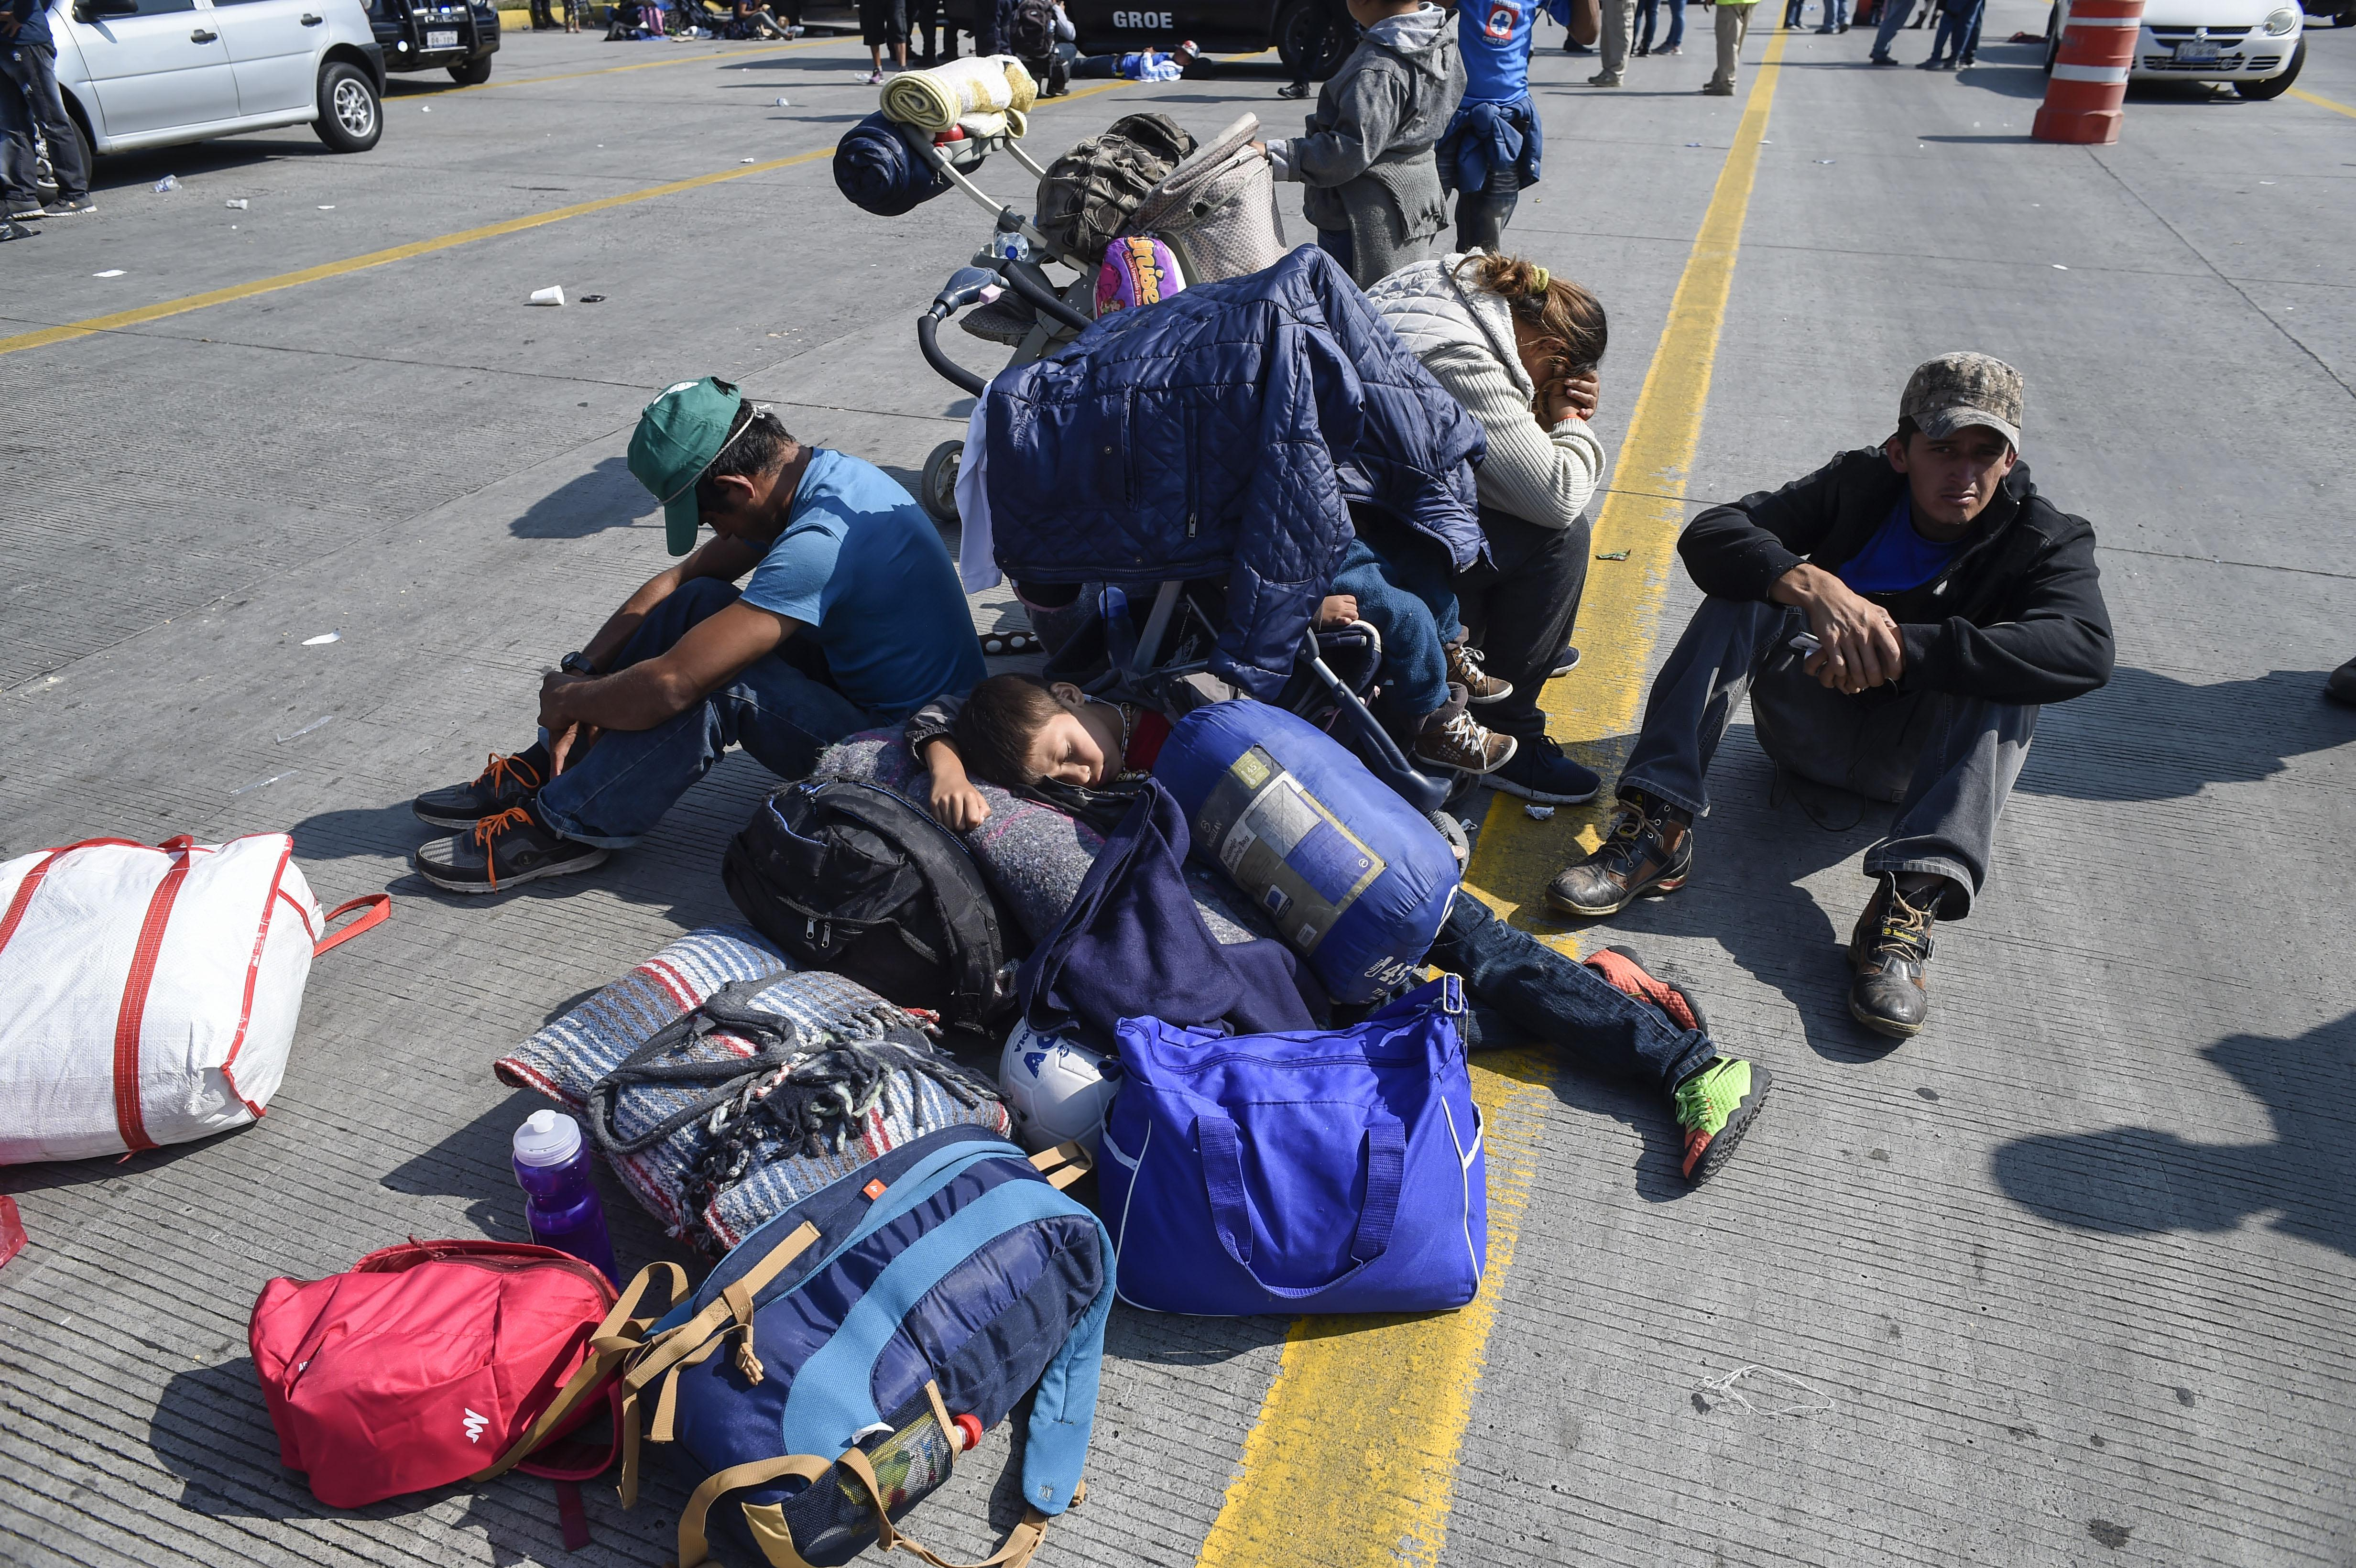 Central American migrants -mostly families with children- taking part in a caravan to the U.S., queue along the highway to get a ride to Irapuato in the state of Guanajuato on November 11, 2018.